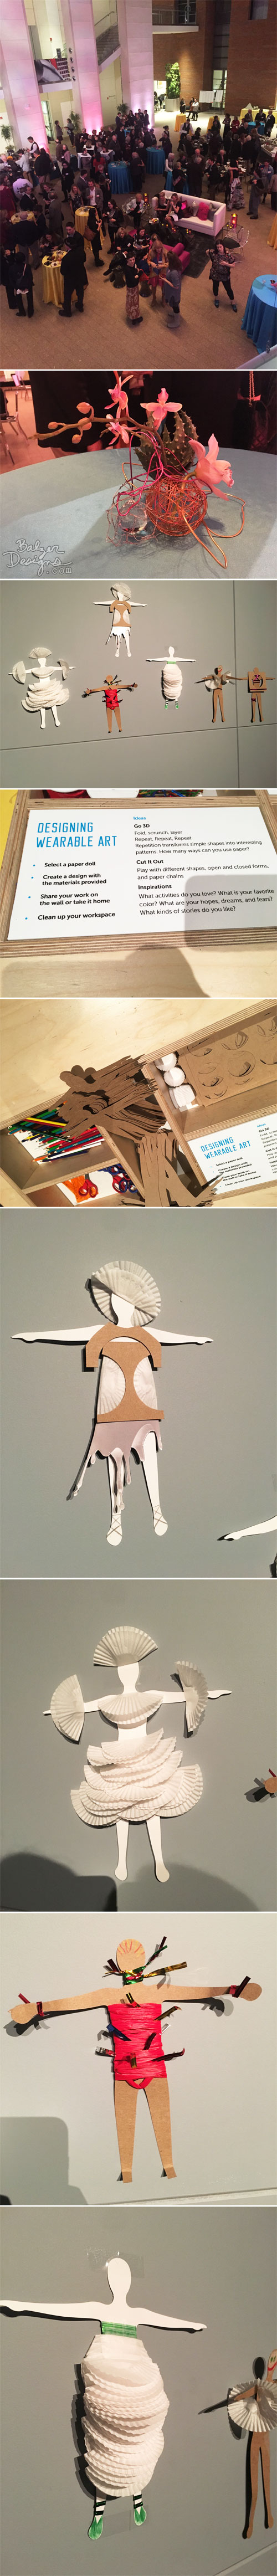 From the Balzer Designs Blog: World of Wearable Art at the Peabody Essex Museum